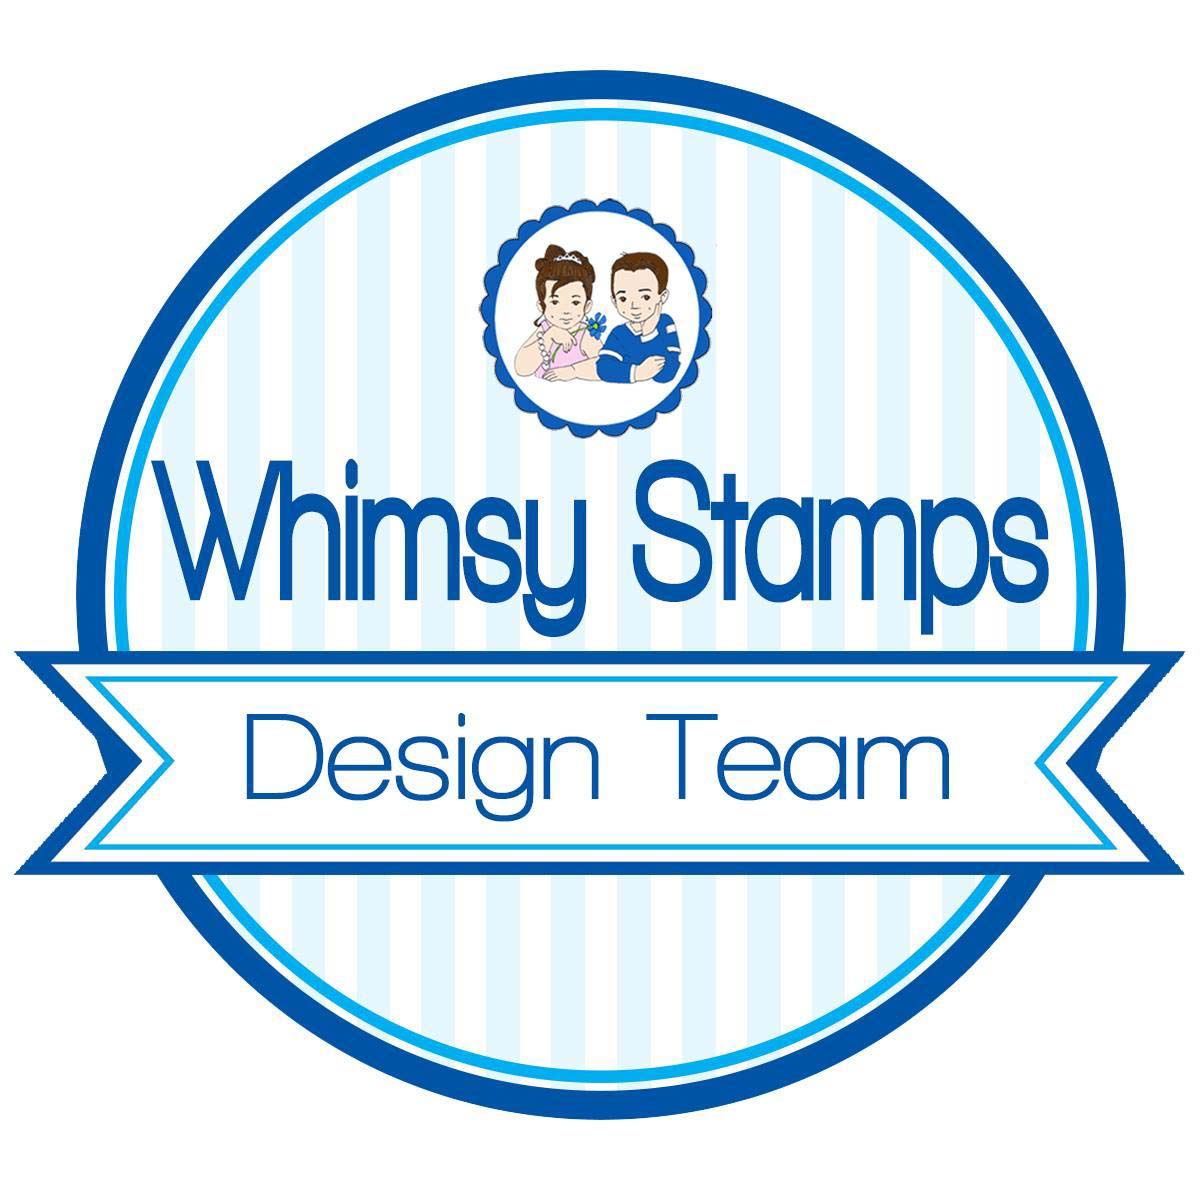 Whimsy Creative Design Team